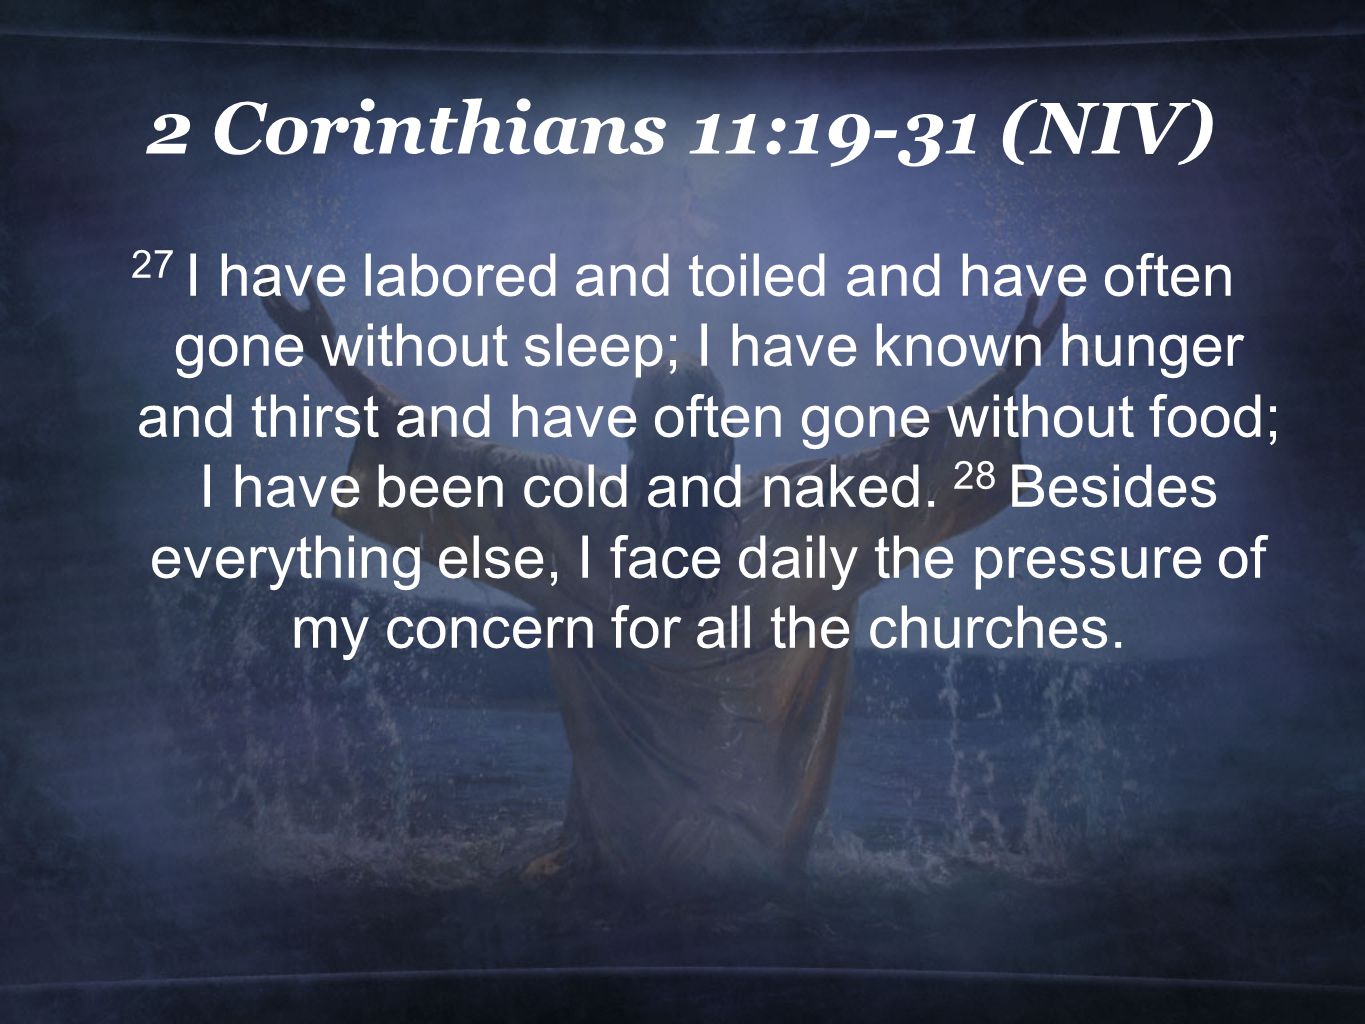 2 Corinthians 11:19-31 (NIV) 27 I have labored and toiled and have often gone without sleep; I have known hunger and thirst and have often gone without food; I have been cold and naked.